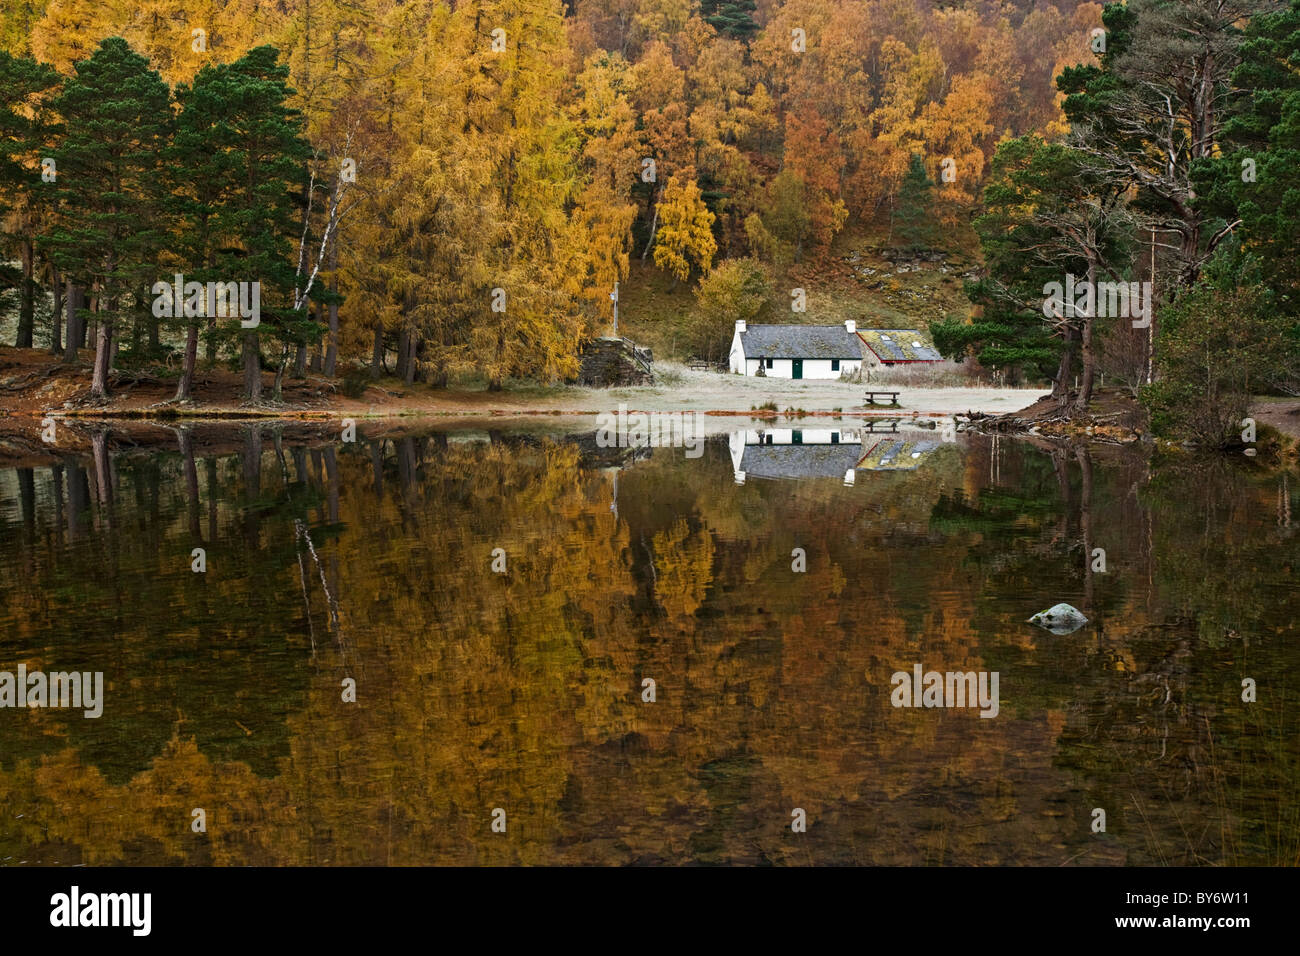 The visitor centre at Loch an Eilein, near Aviemore in the Cairngorms National Park. Part of the Rothiemurchus Estate. - Stock Image